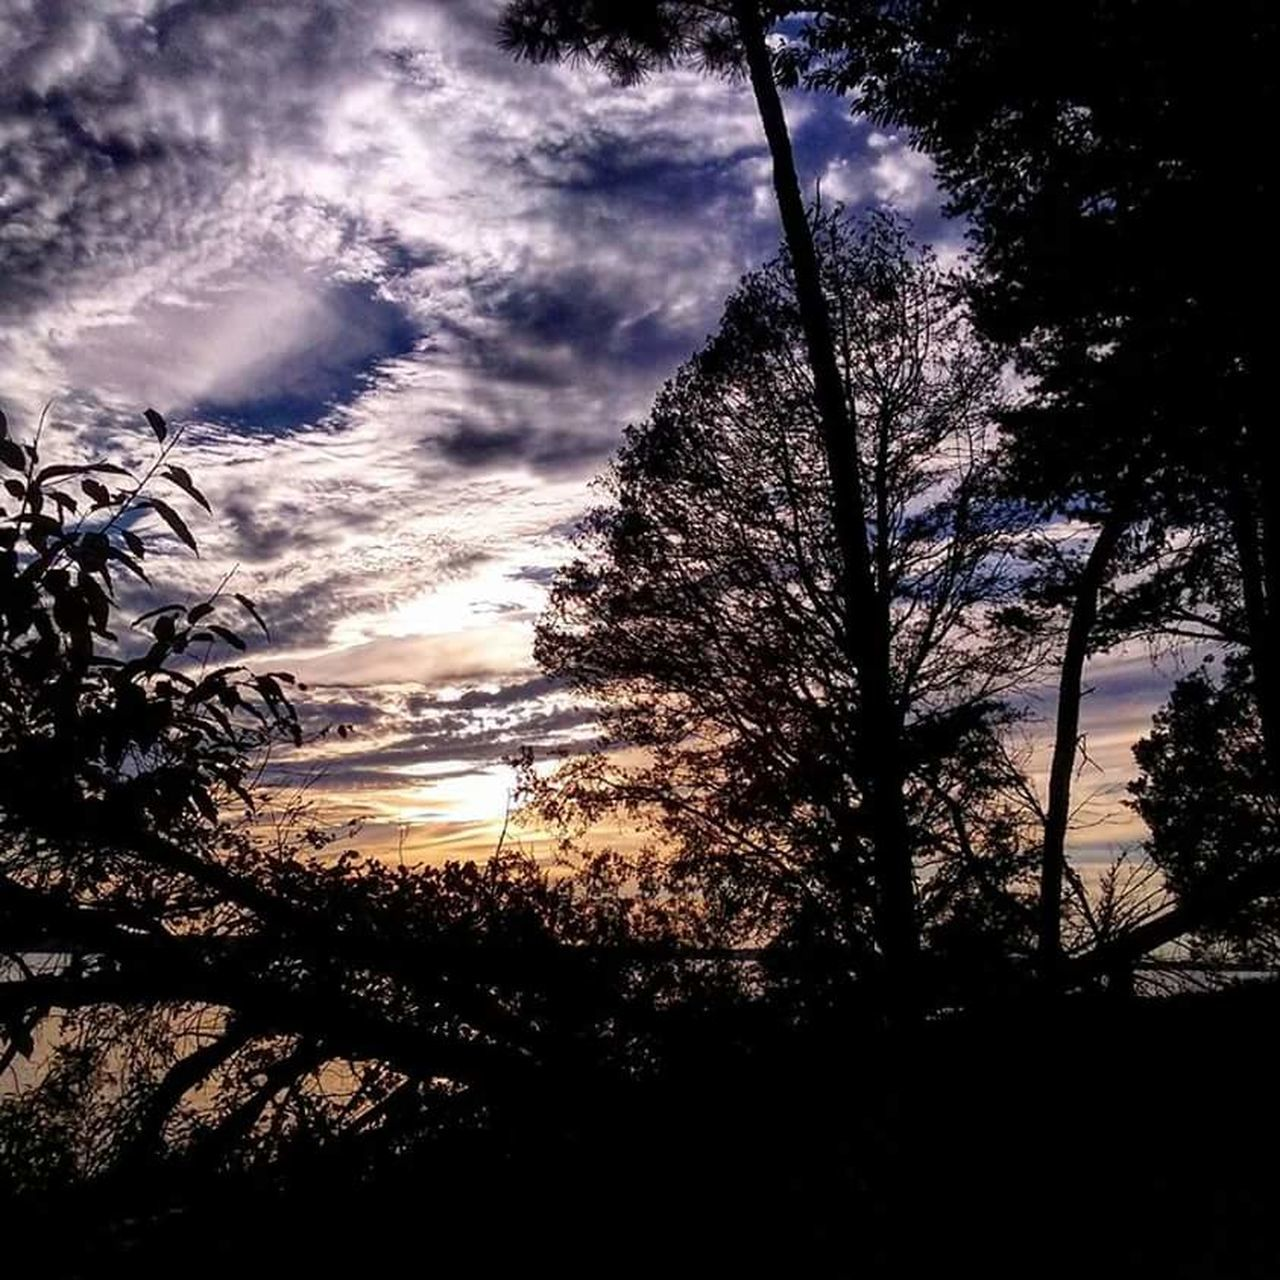 tree, nature, low angle view, sky, beauty in nature, scenics, silhouette, tranquil scene, no people, tranquility, growth, cloud - sky, outdoors, sunset, forest, tree trunk, sunlight, day, branch